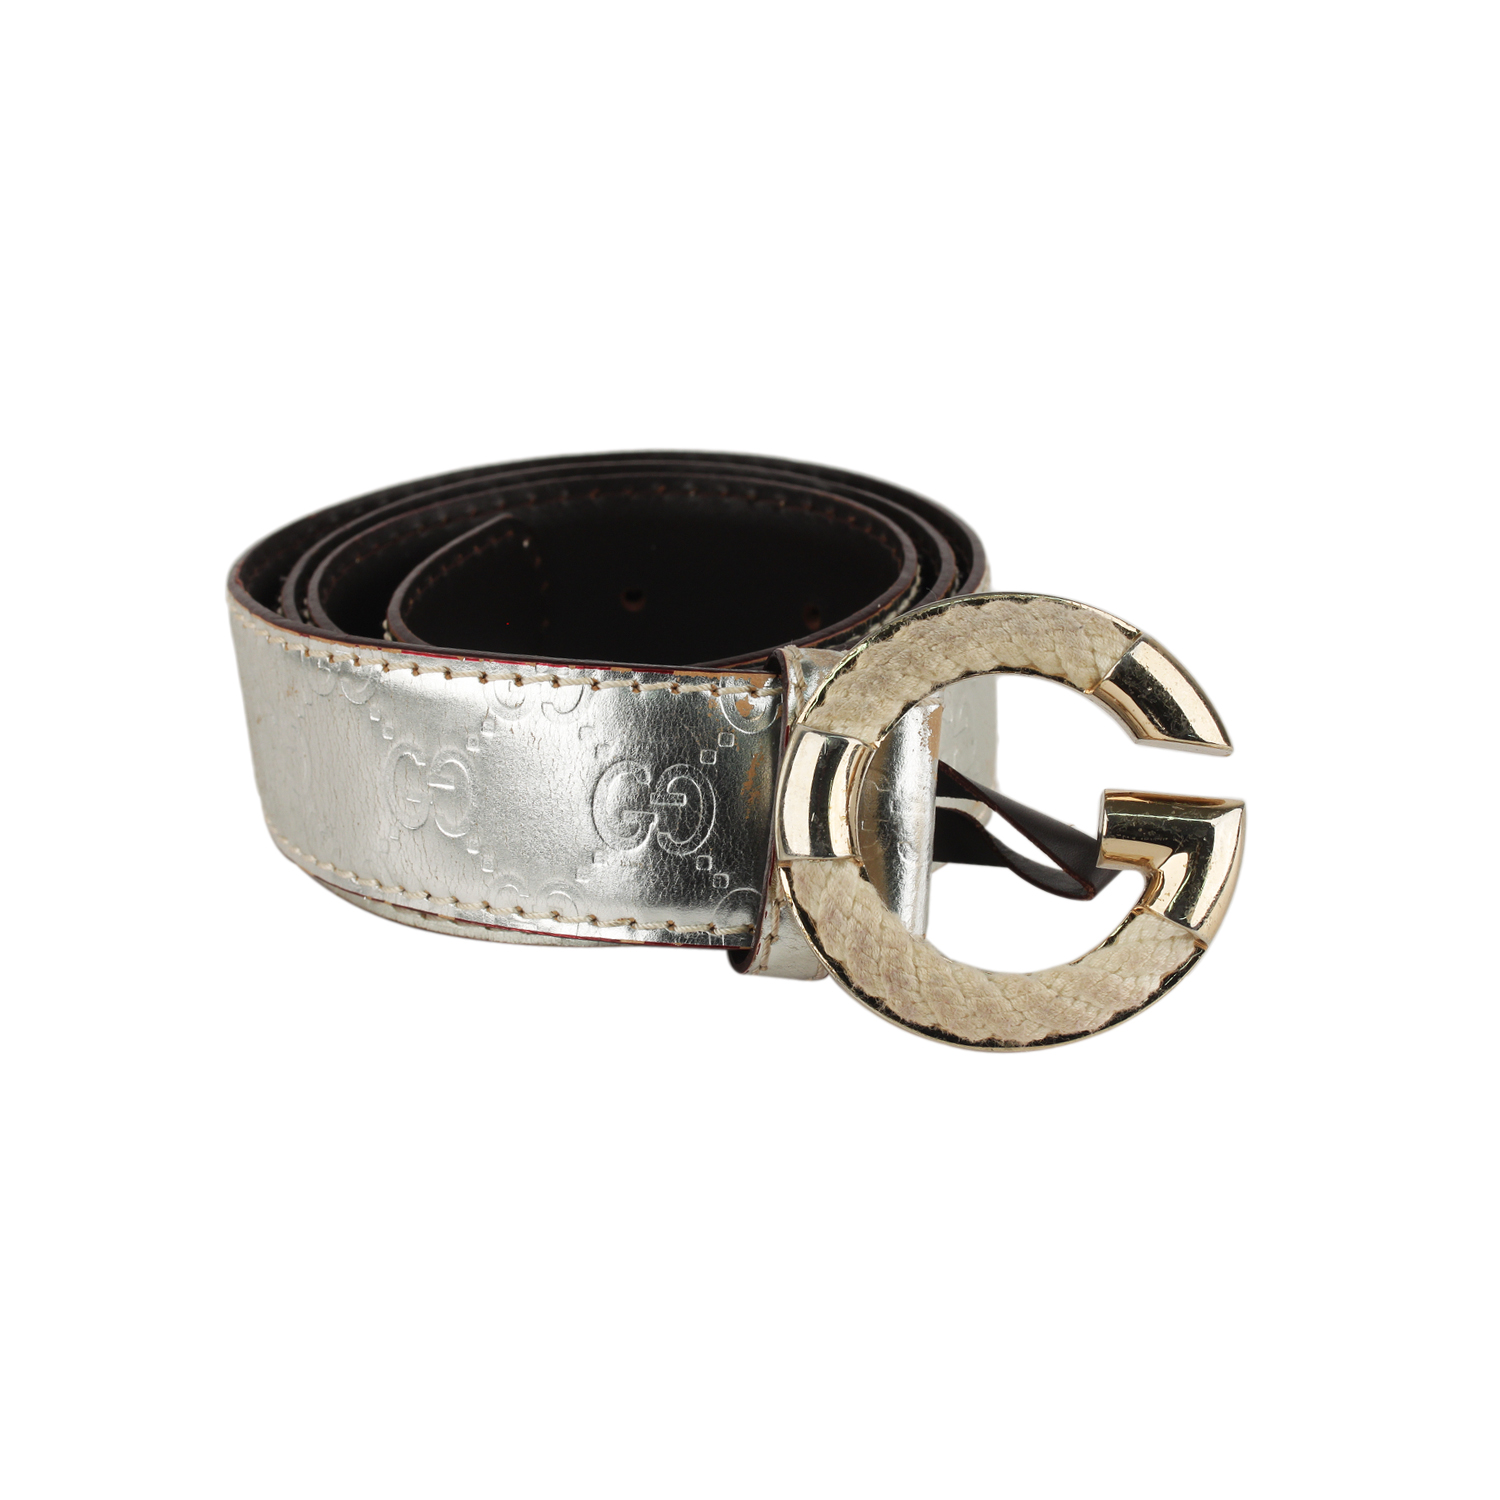 e90cded4a Gucci belt in silver-tone Guccissima lleather. G rope logo buckle. 1.5  inches - 3,8cm wide. Size: 85/34. 5 Holes adjustament.